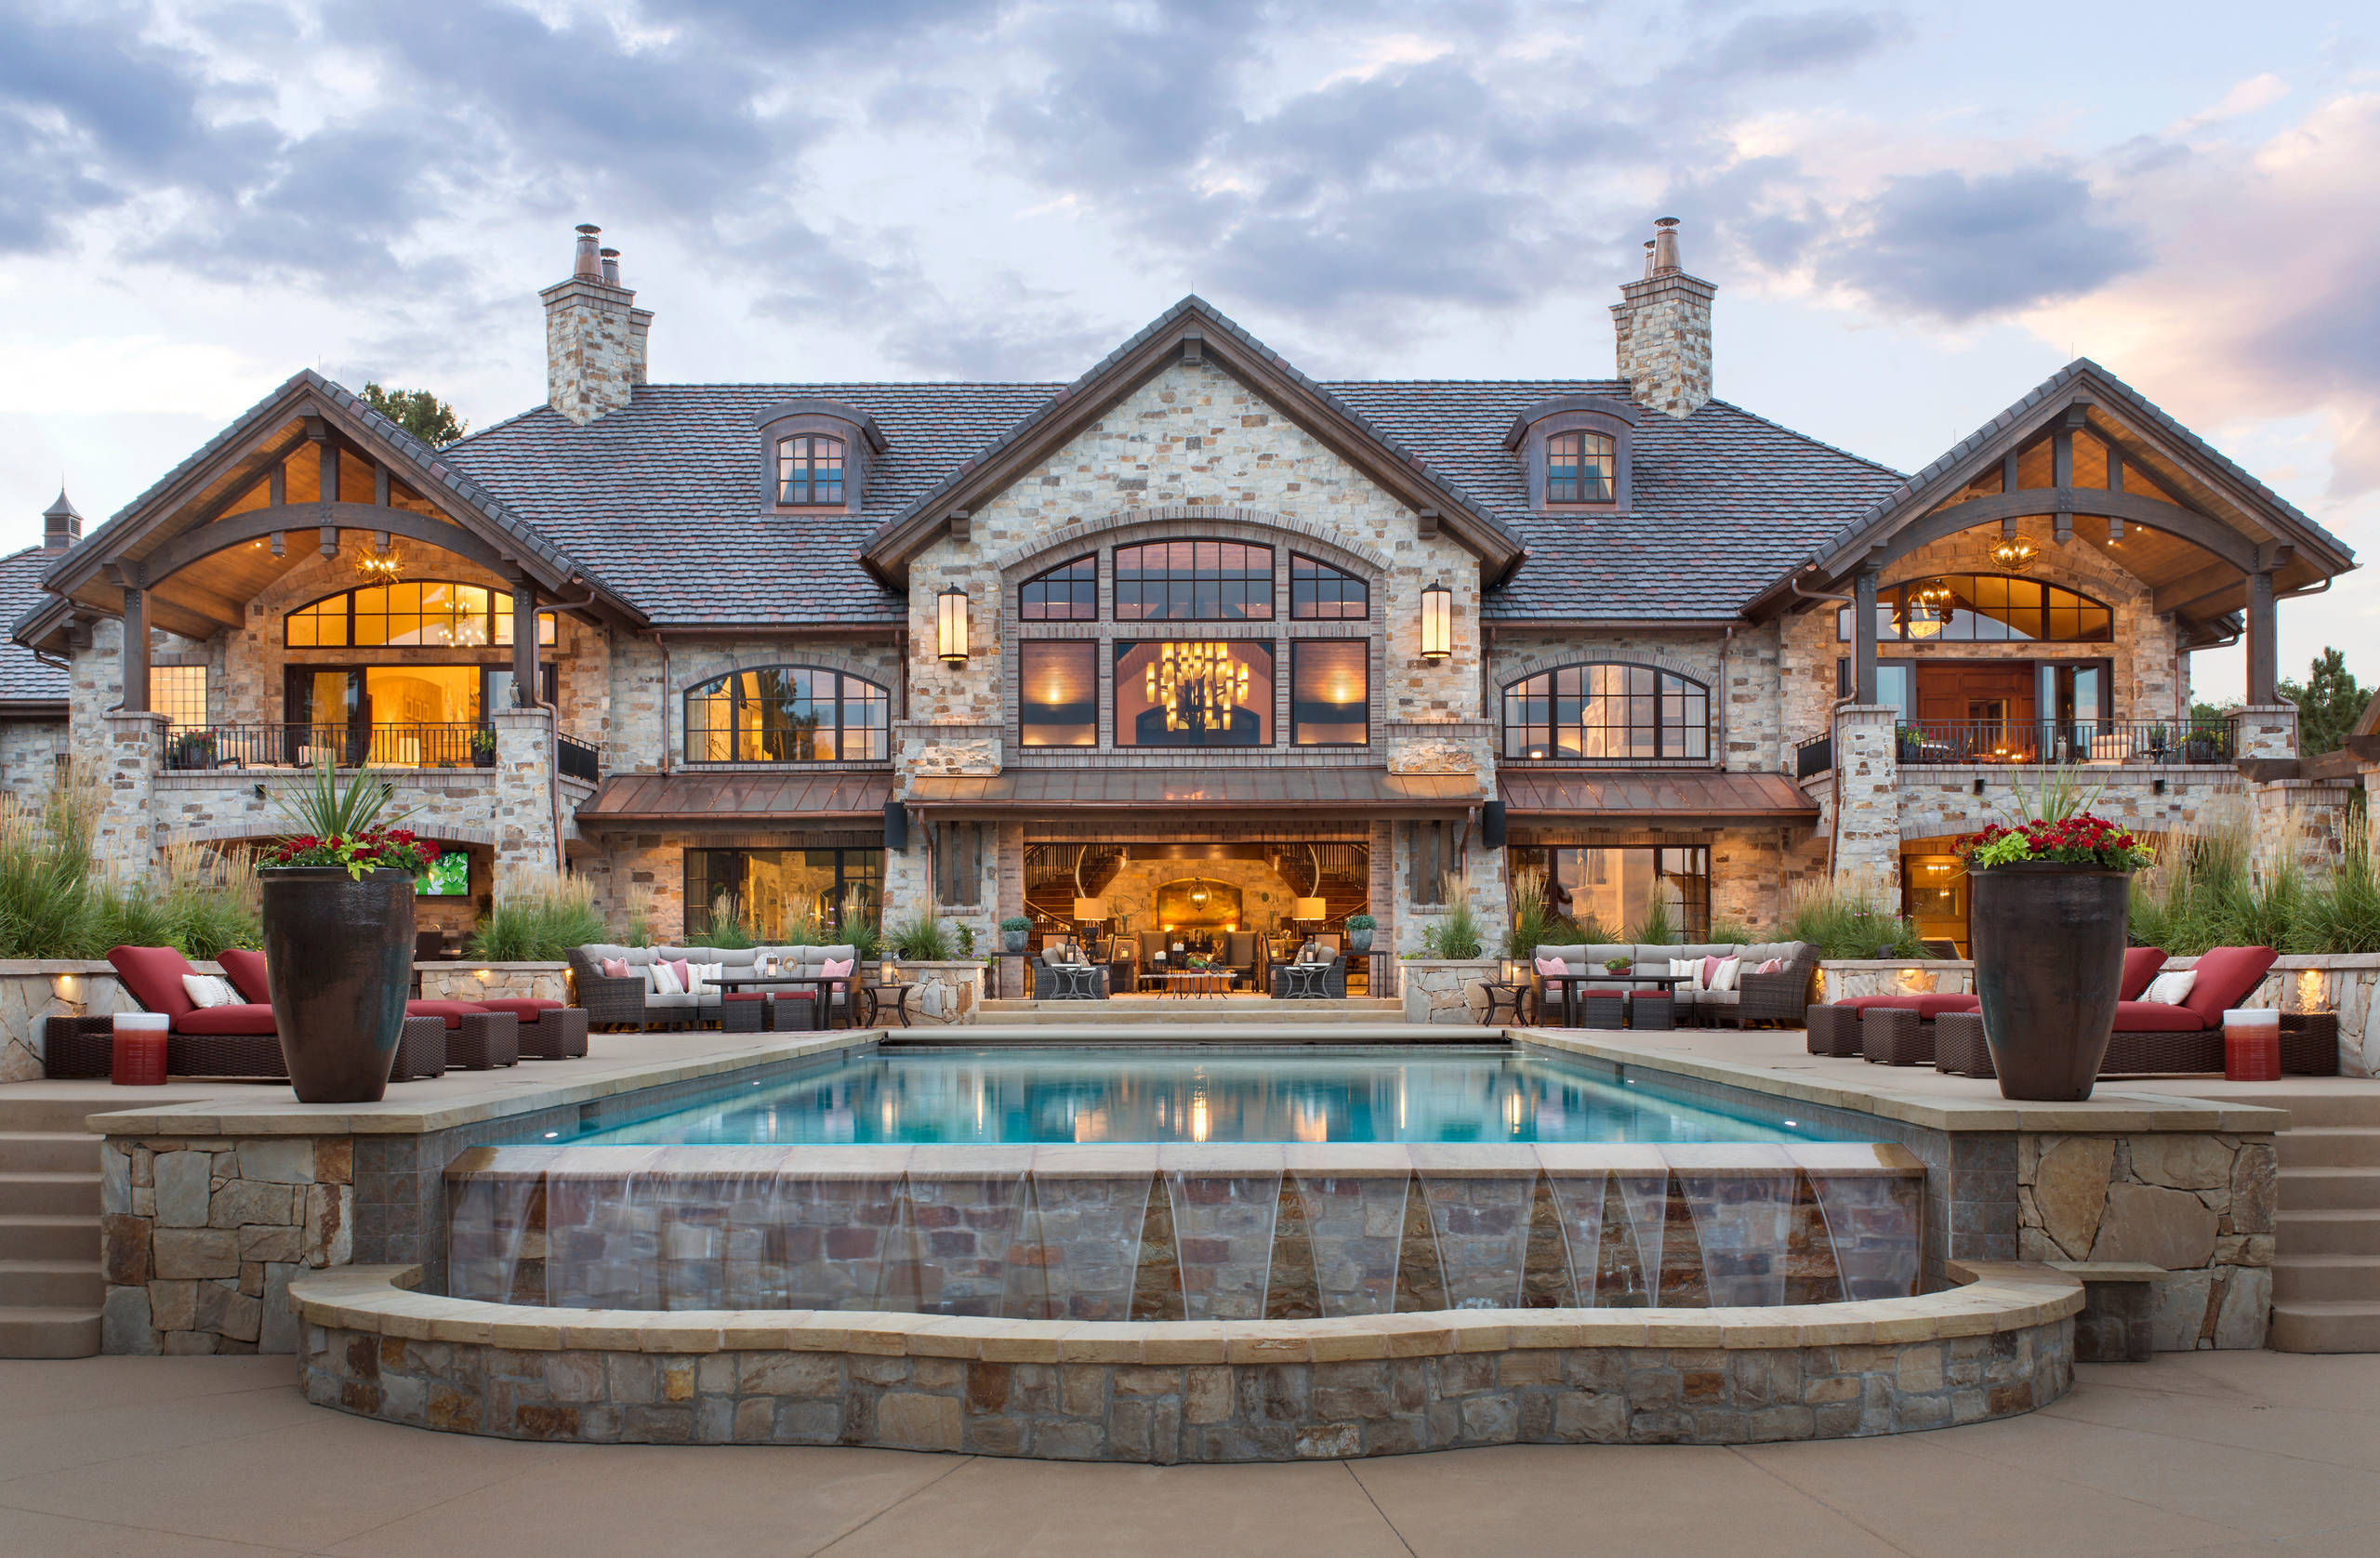 Exterior: 15 Spectacular Rustic Exterior Designs That You Must See